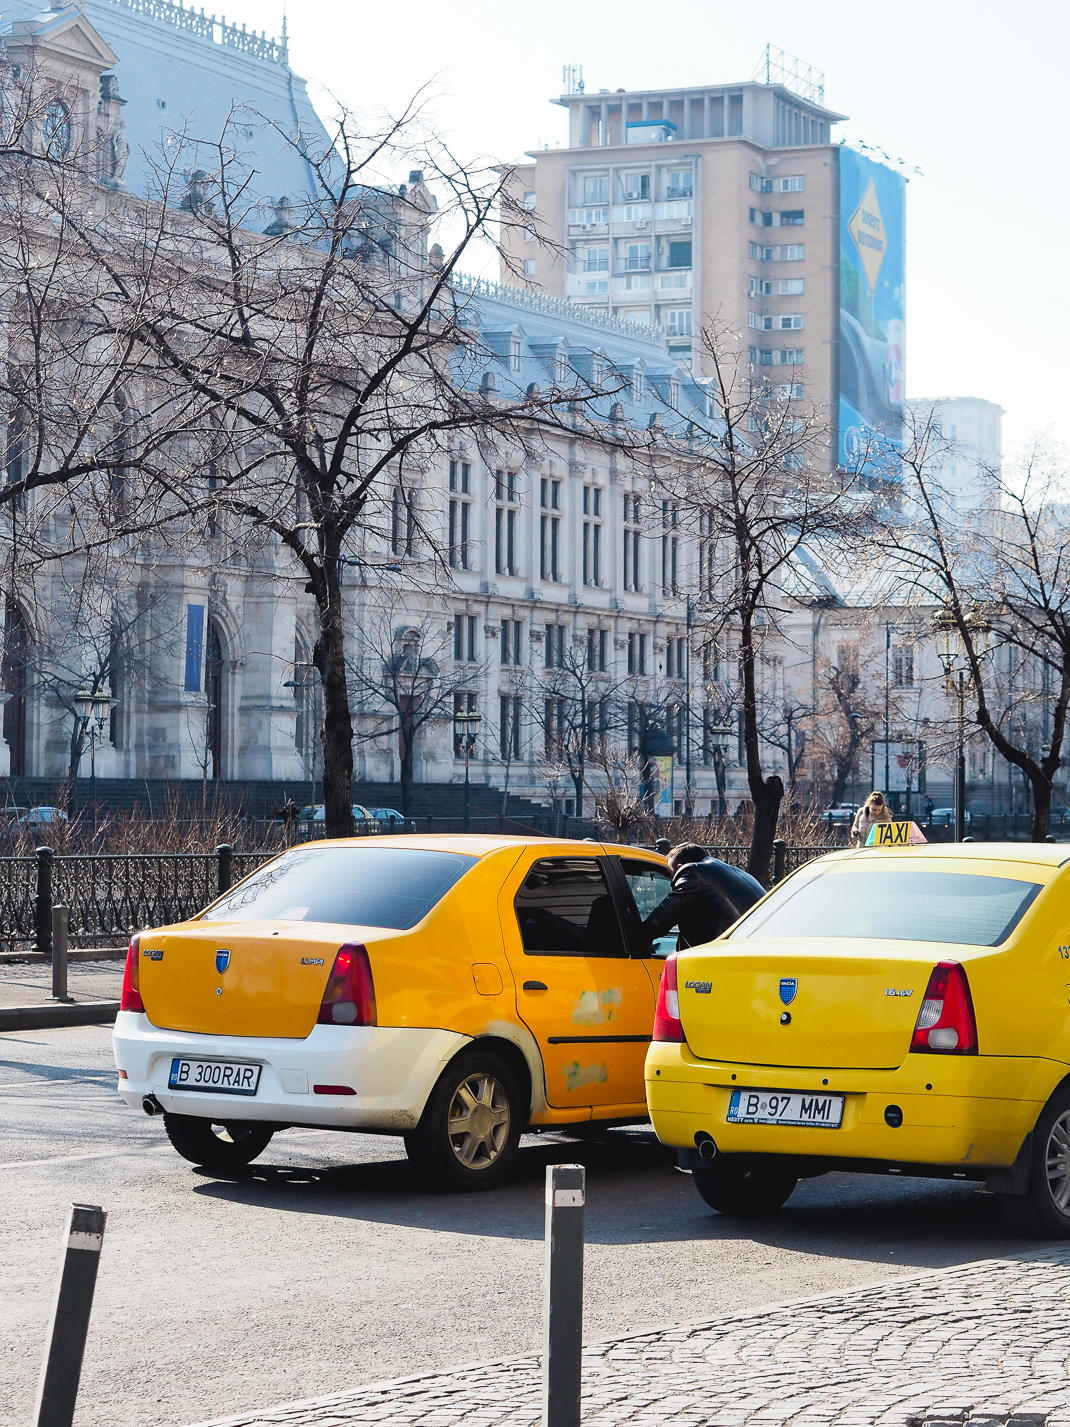 bucharest yellow taxis